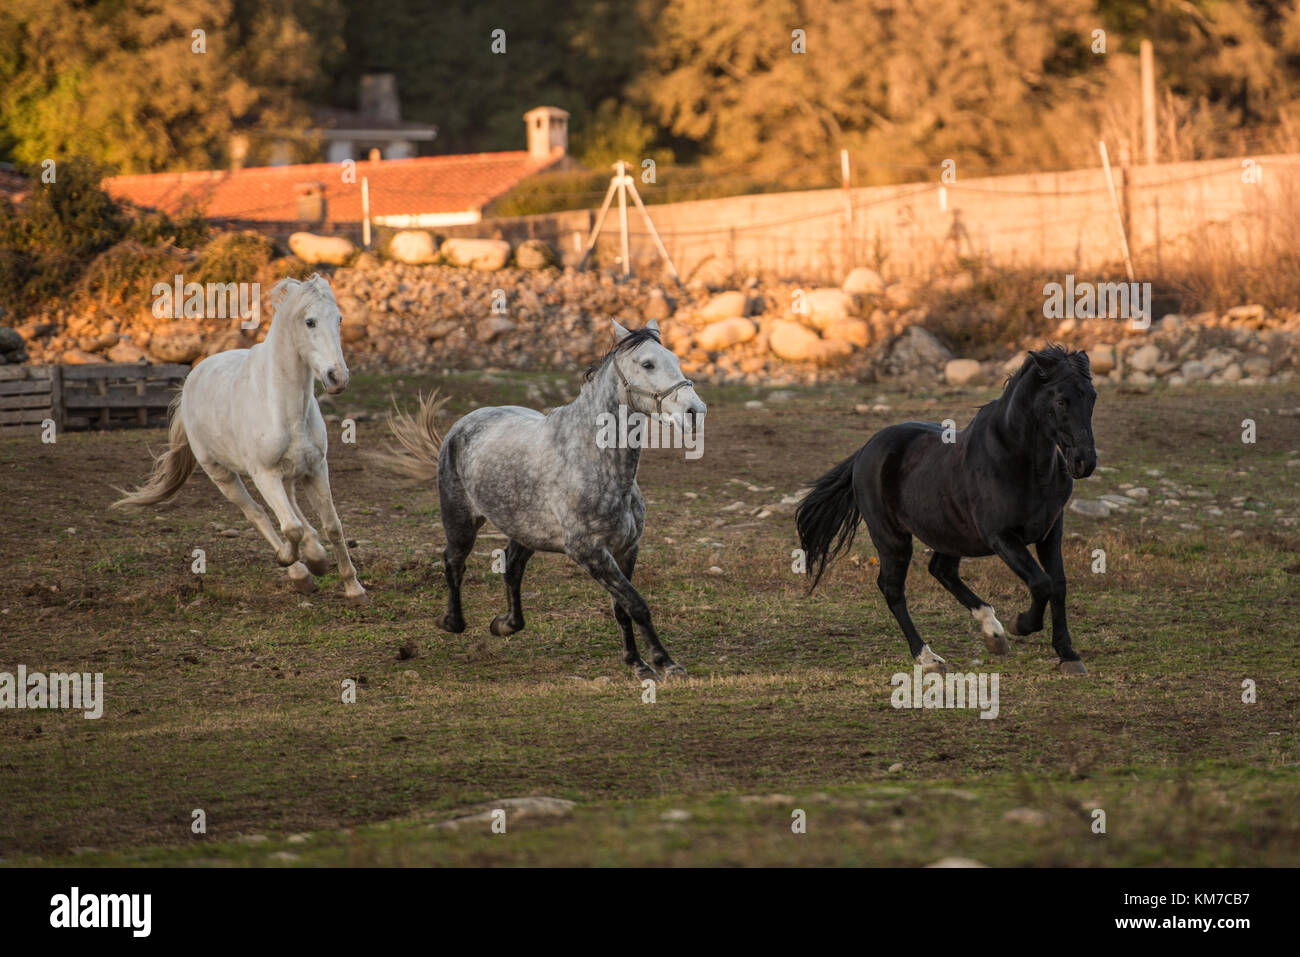 Three horses, two white and one black, run free on a ranch in Jerte, Extremadura, Spain. - Stock Image